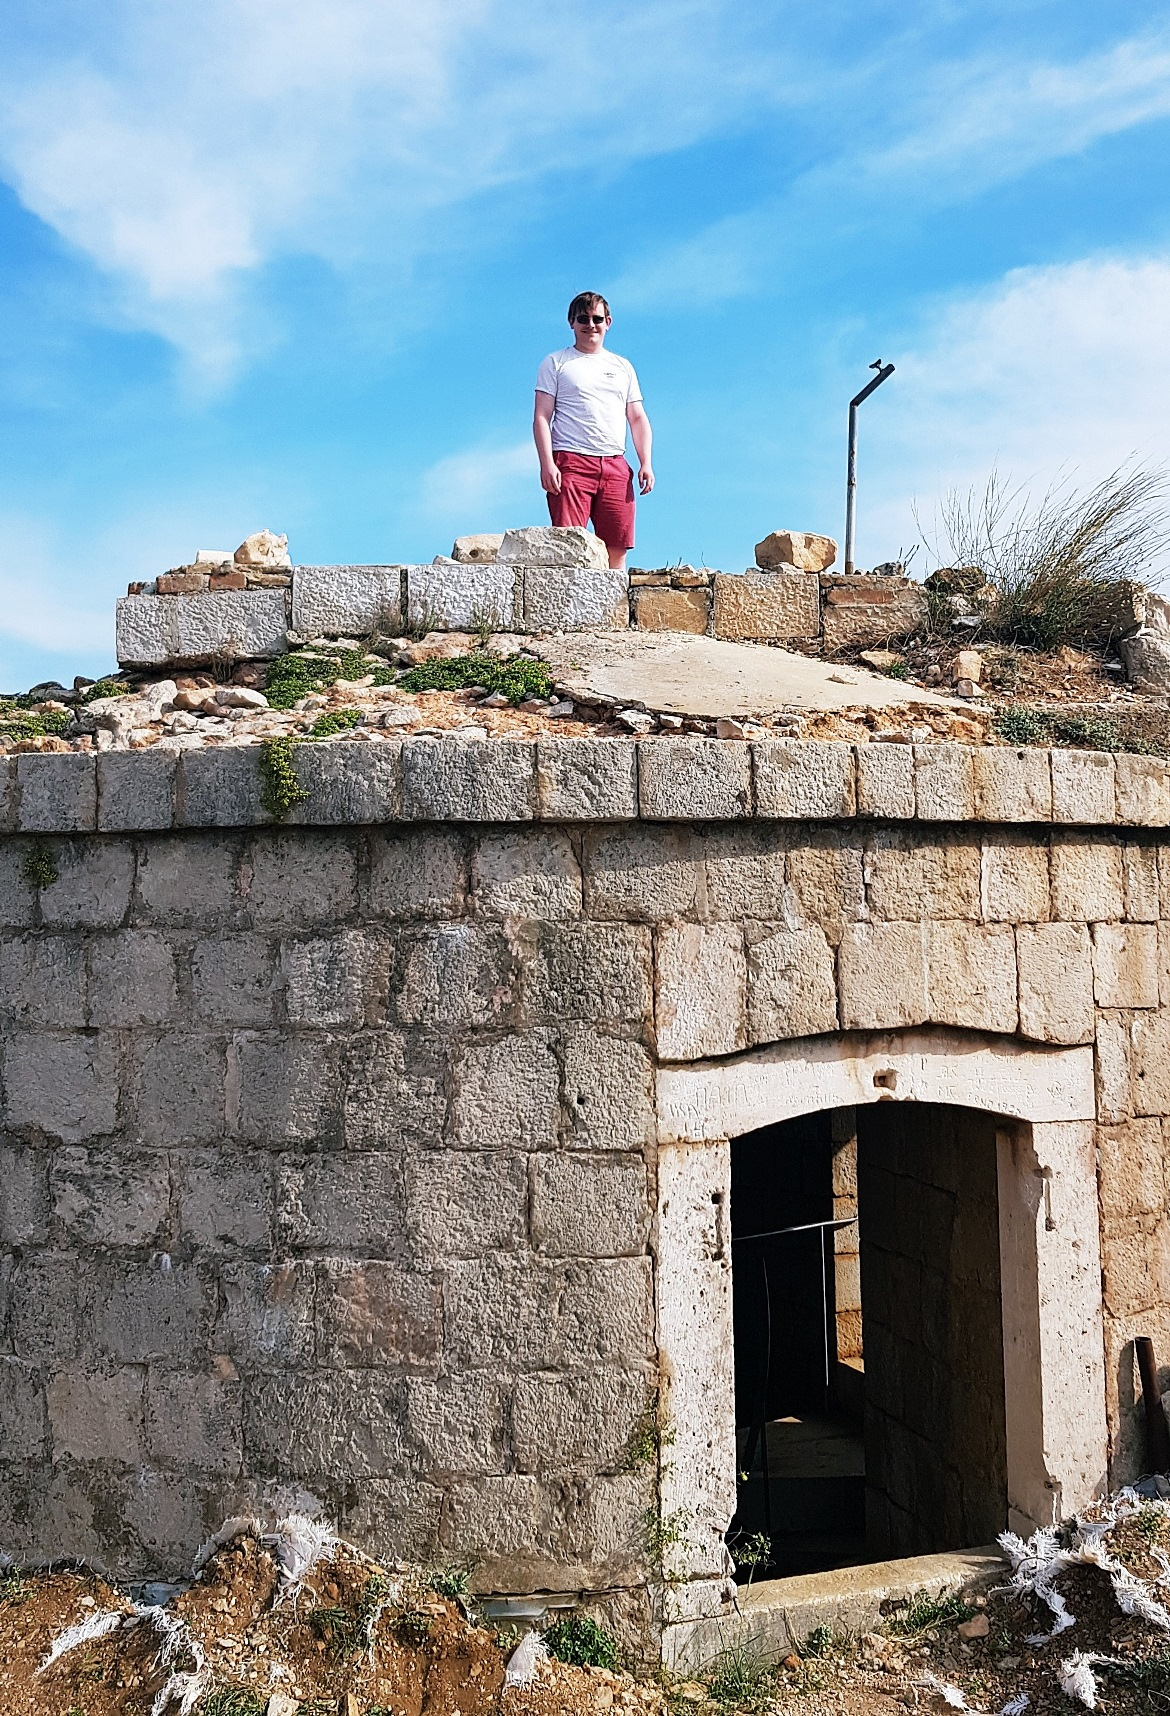 Tim on top of the Lokrum Fort - Sightseeing in Dubrovnik, Croatia - Top Travel Tips by BeckyBecky Blogs